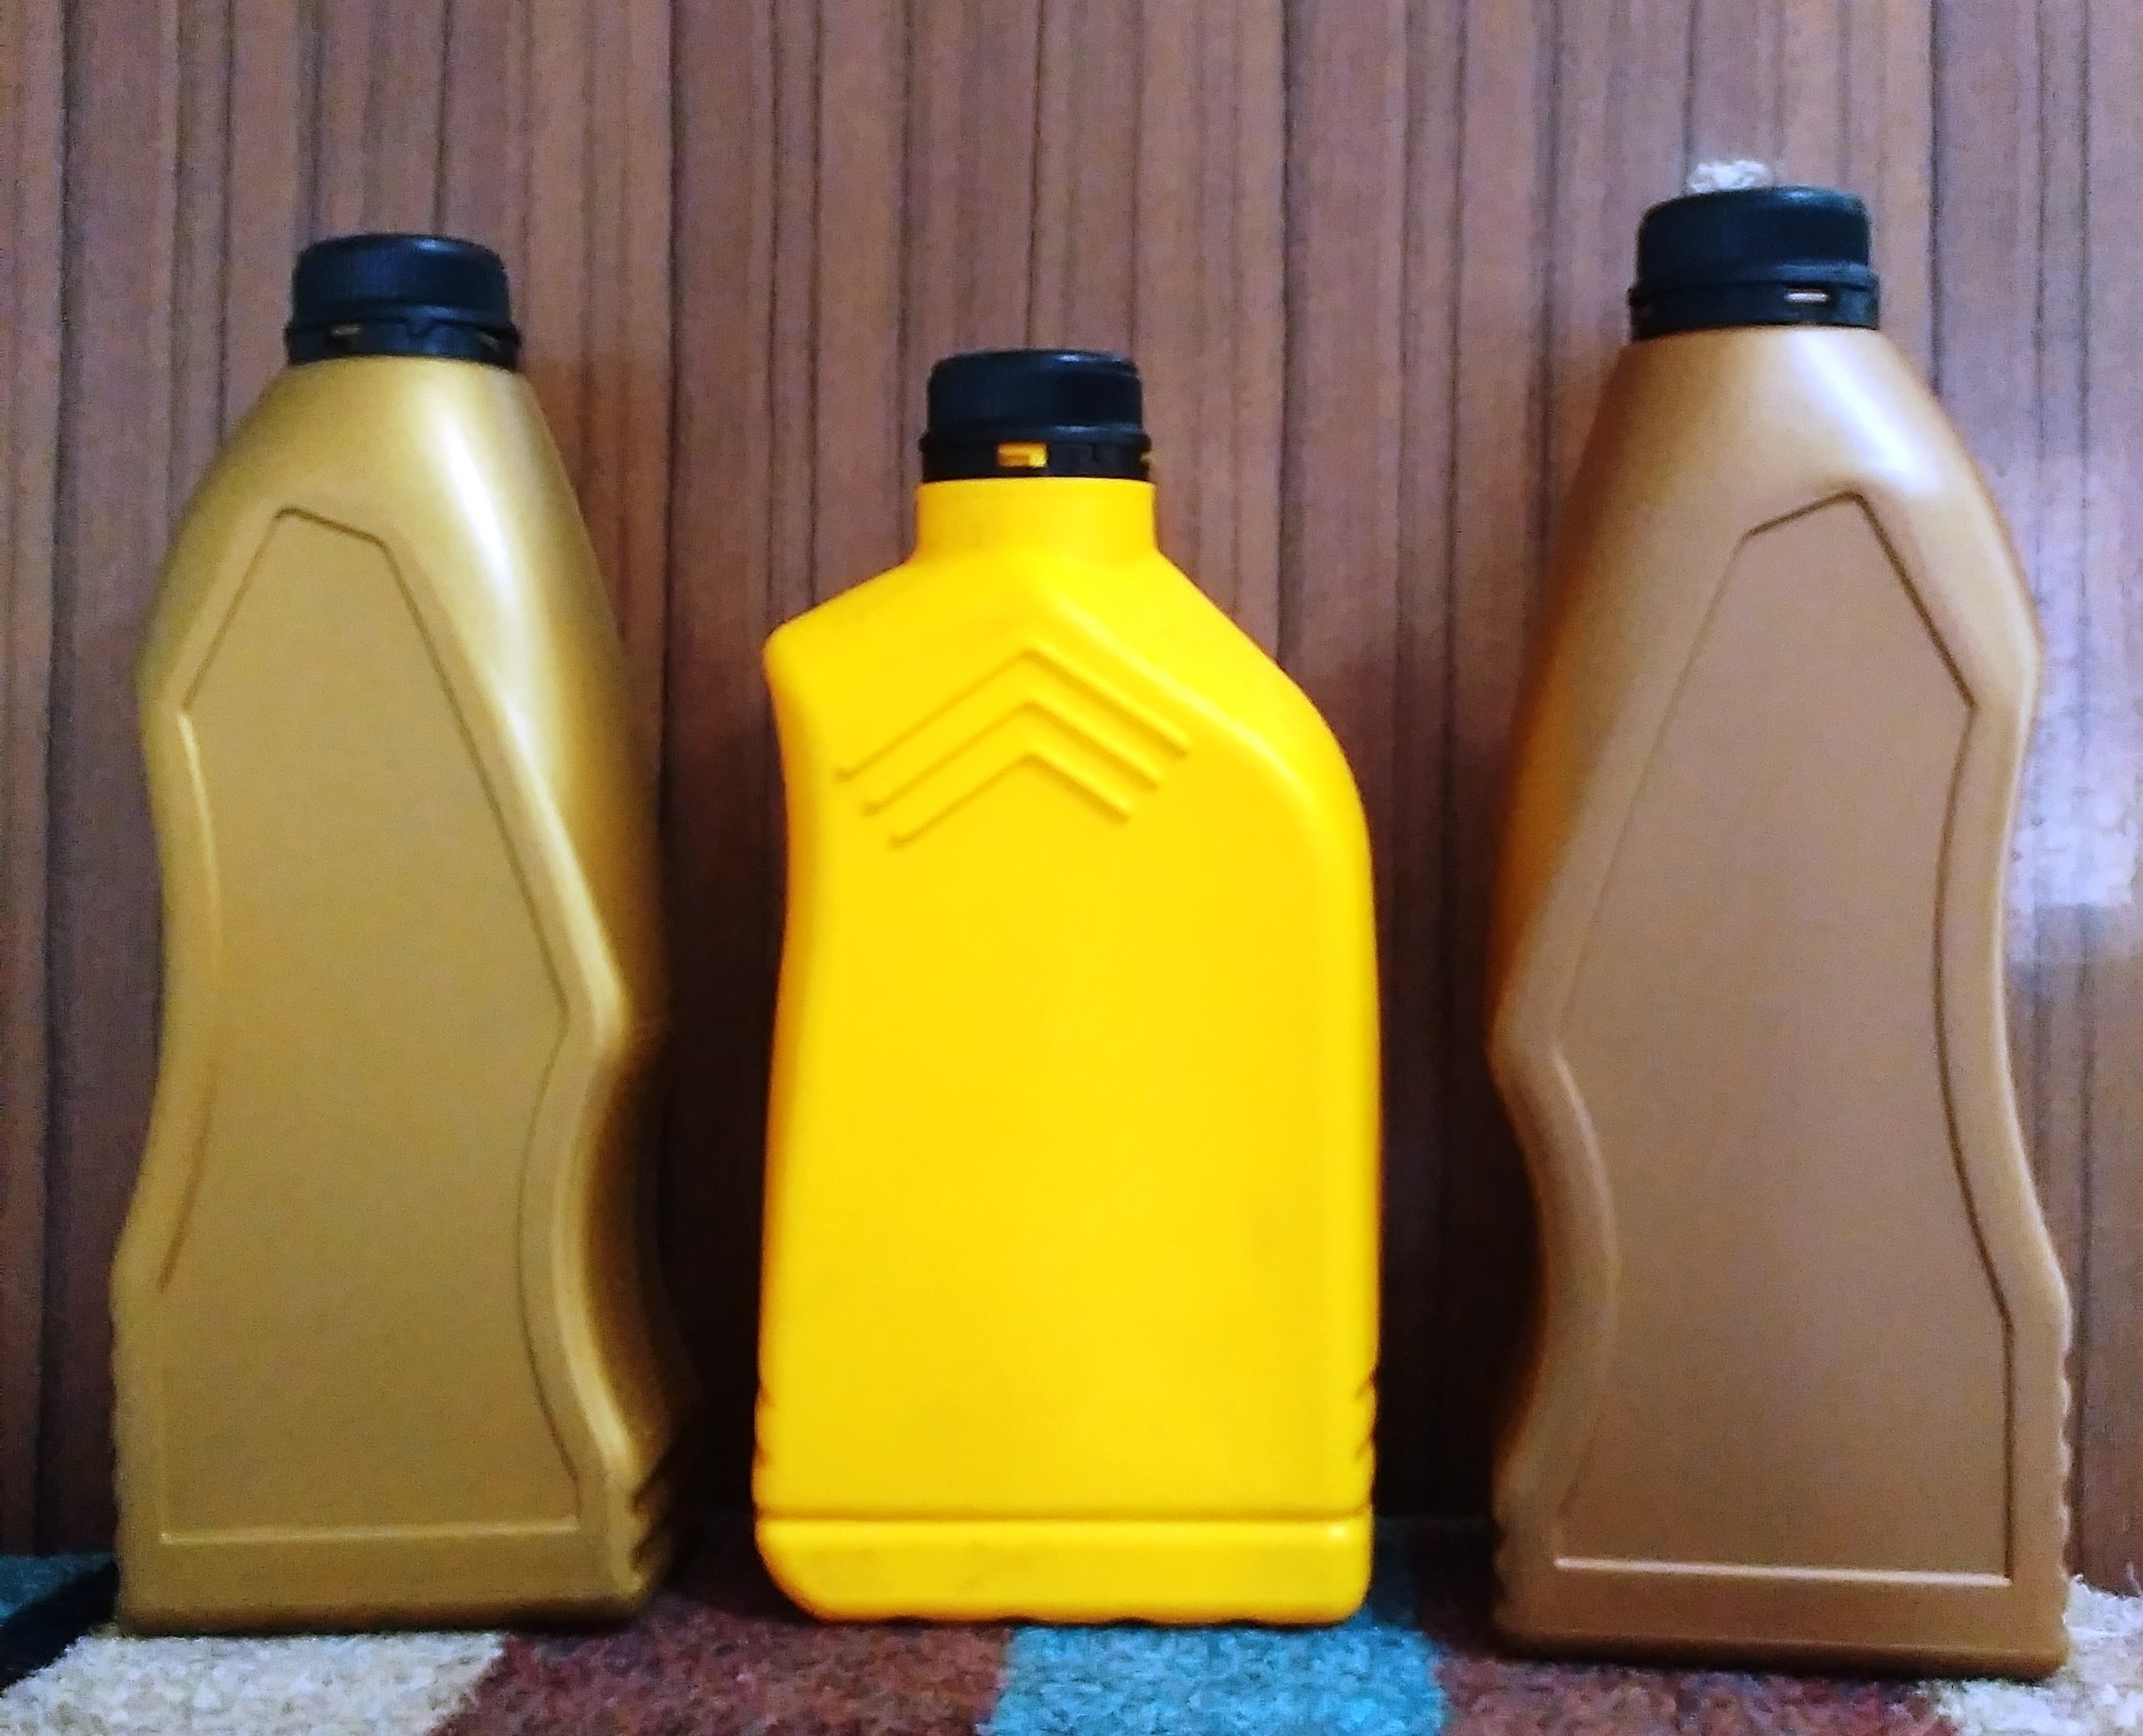 Engine Oil & Coolant Cans